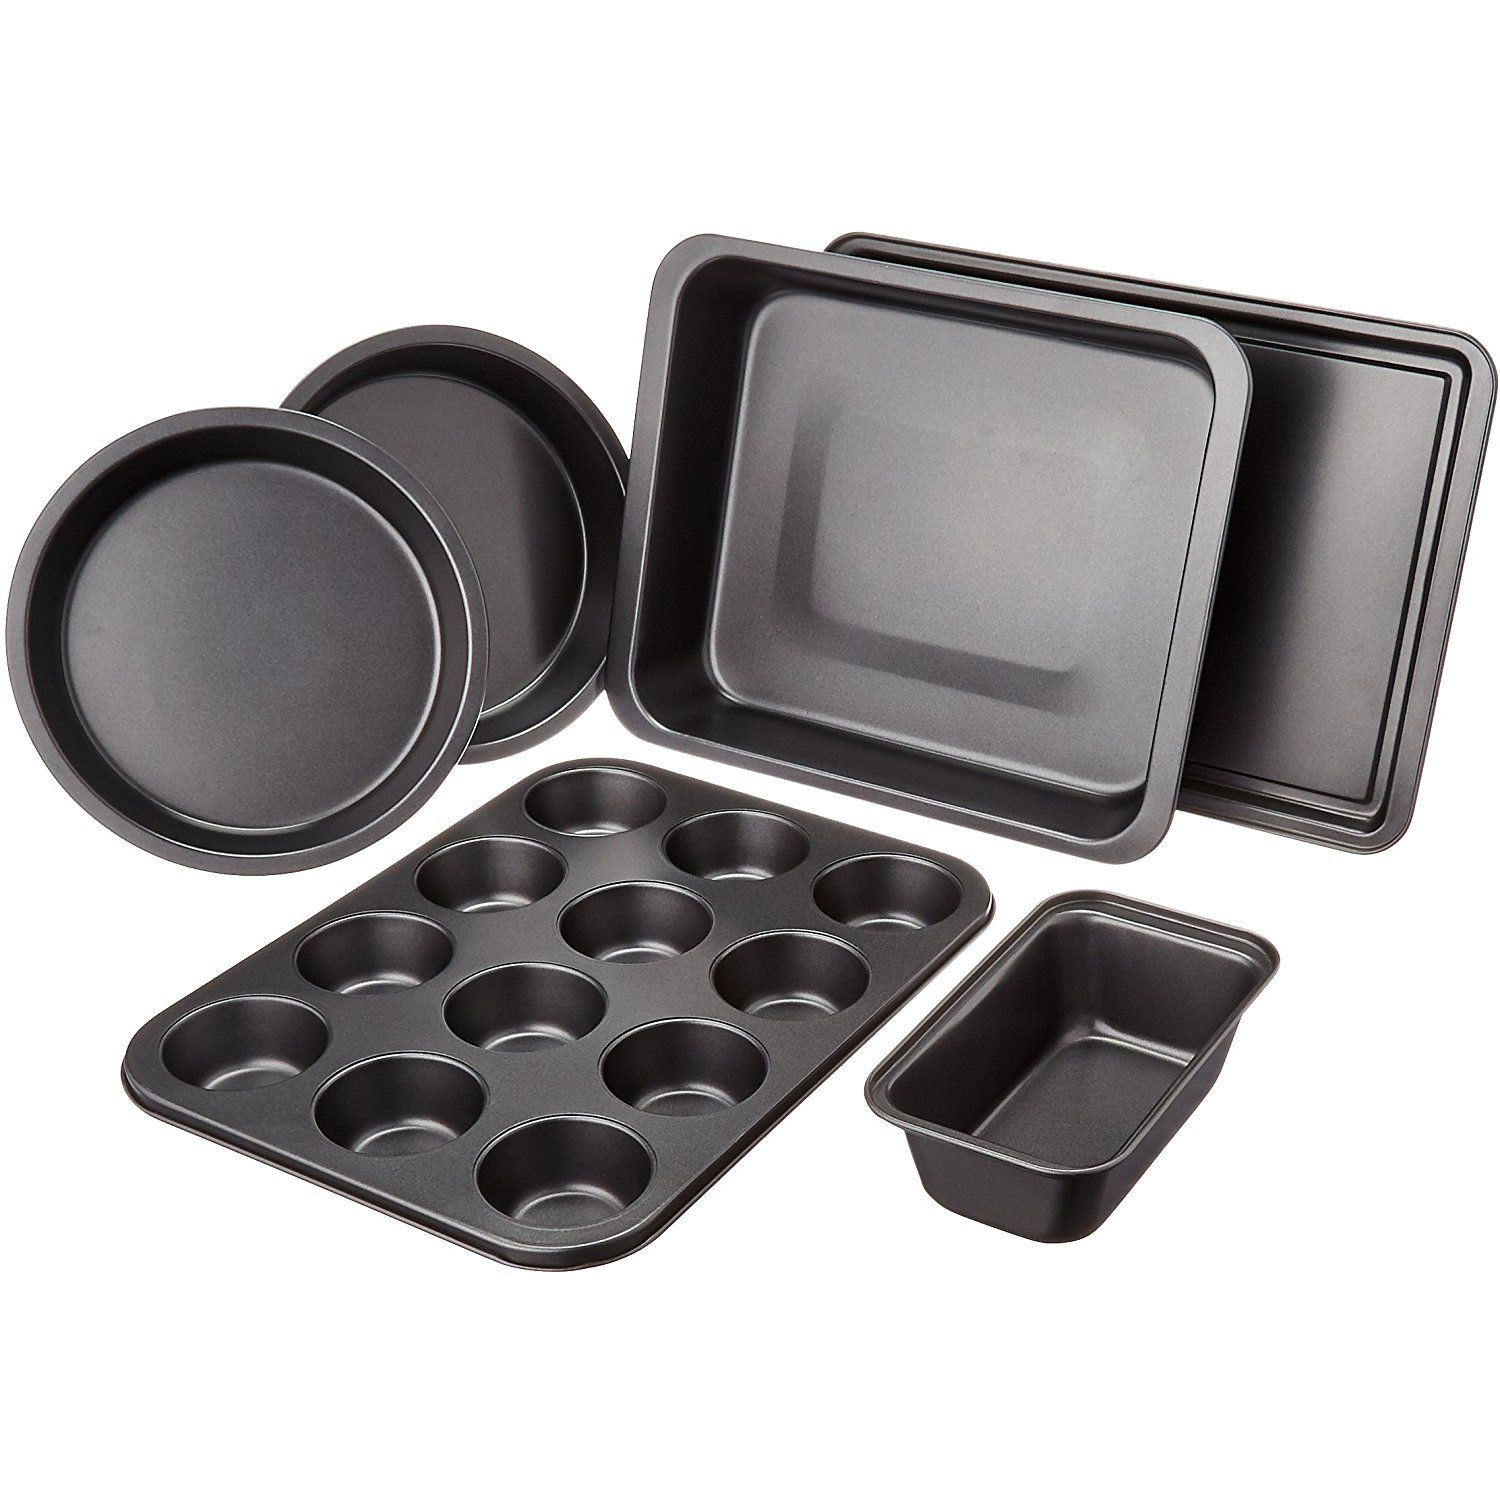 Amazonbasics 6 Piece Bakeware Set Read More Reviews Of The